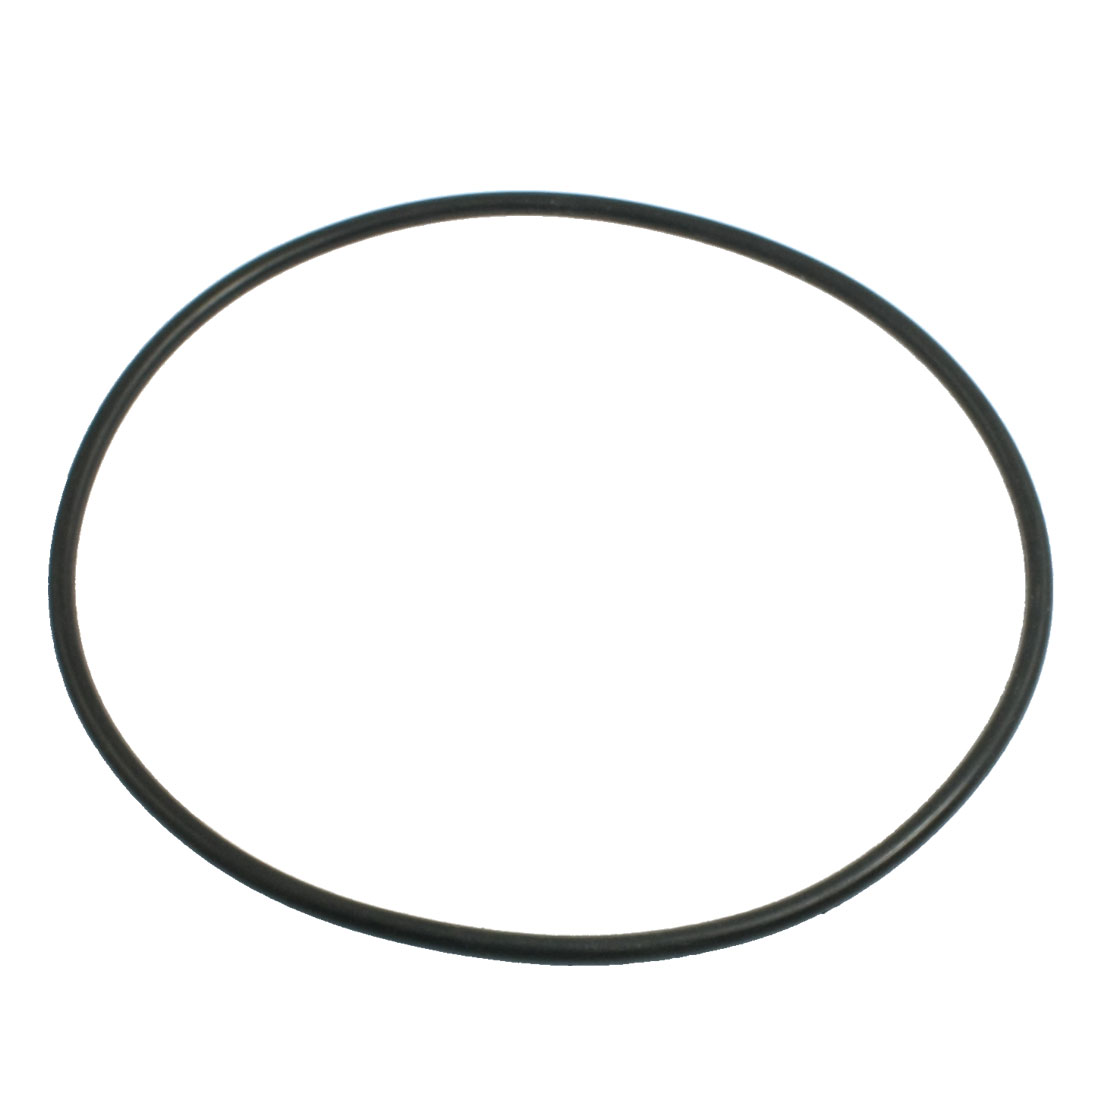 5mm x 170mm Nitrile Rubber O Type Sealing Ring Gasket Grommets Black